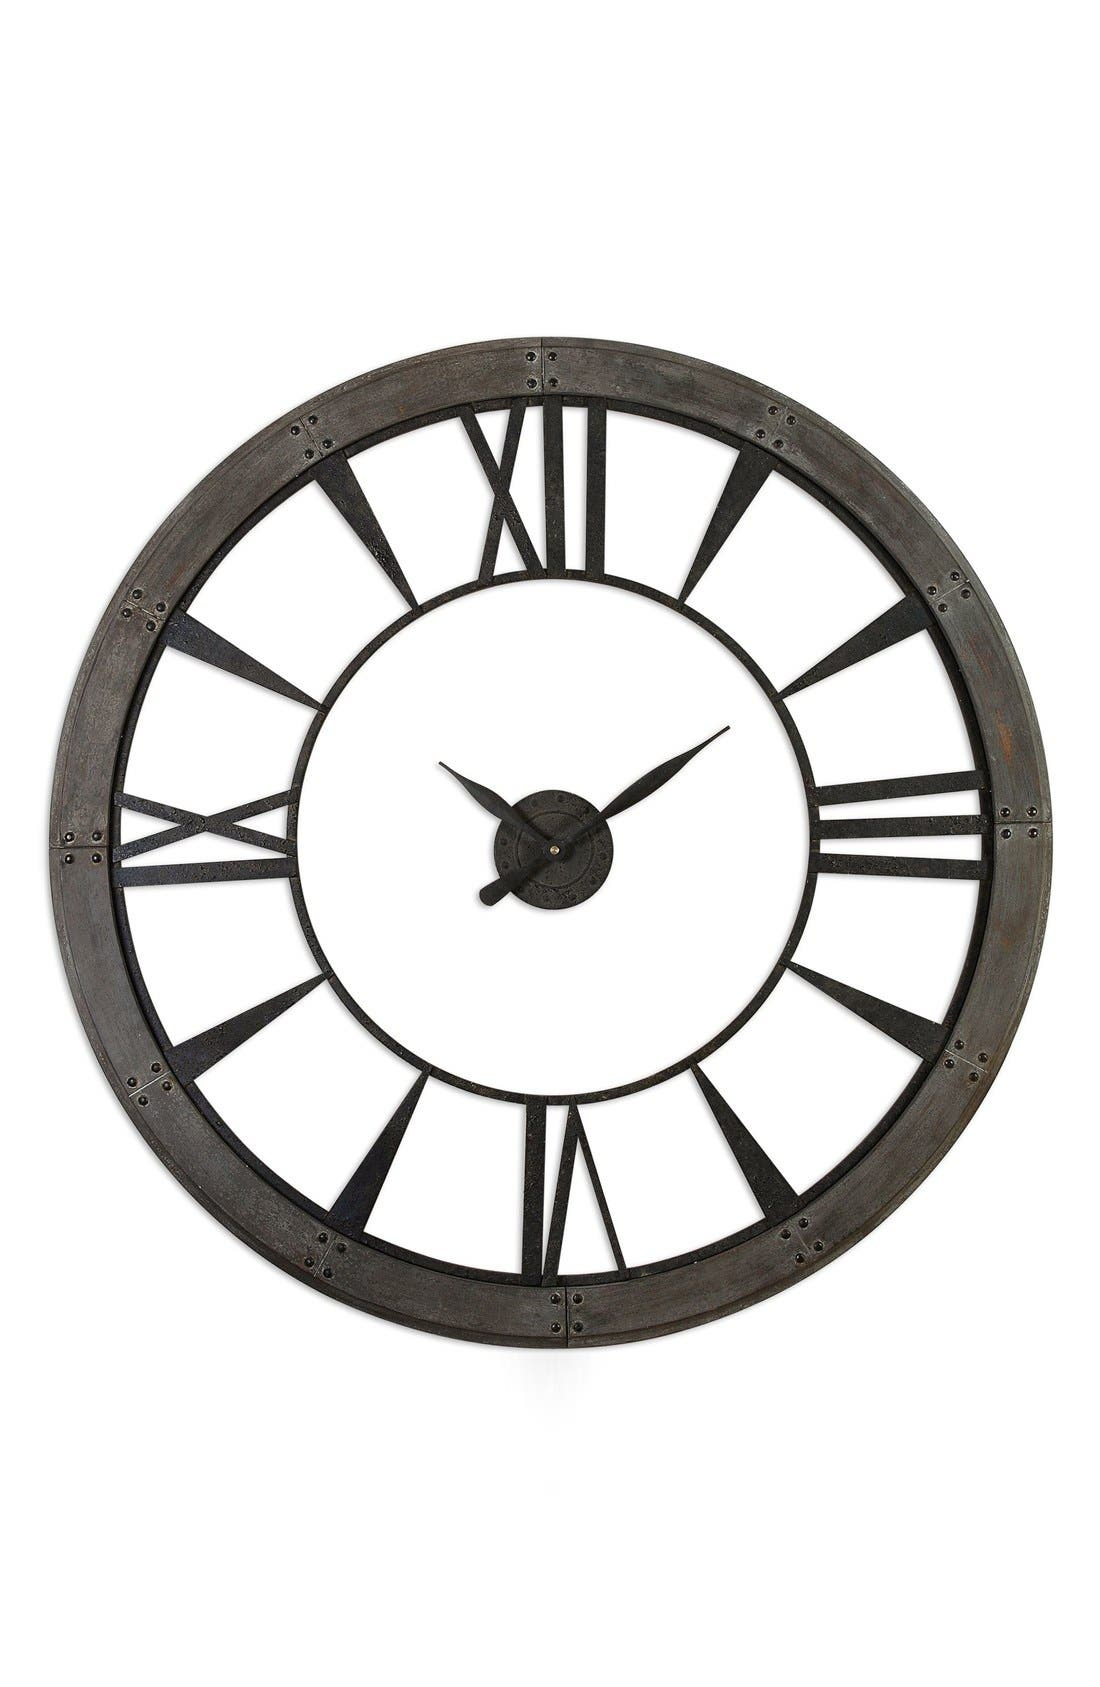 Main Image - Uttermost 'Ronan' Wall Clock